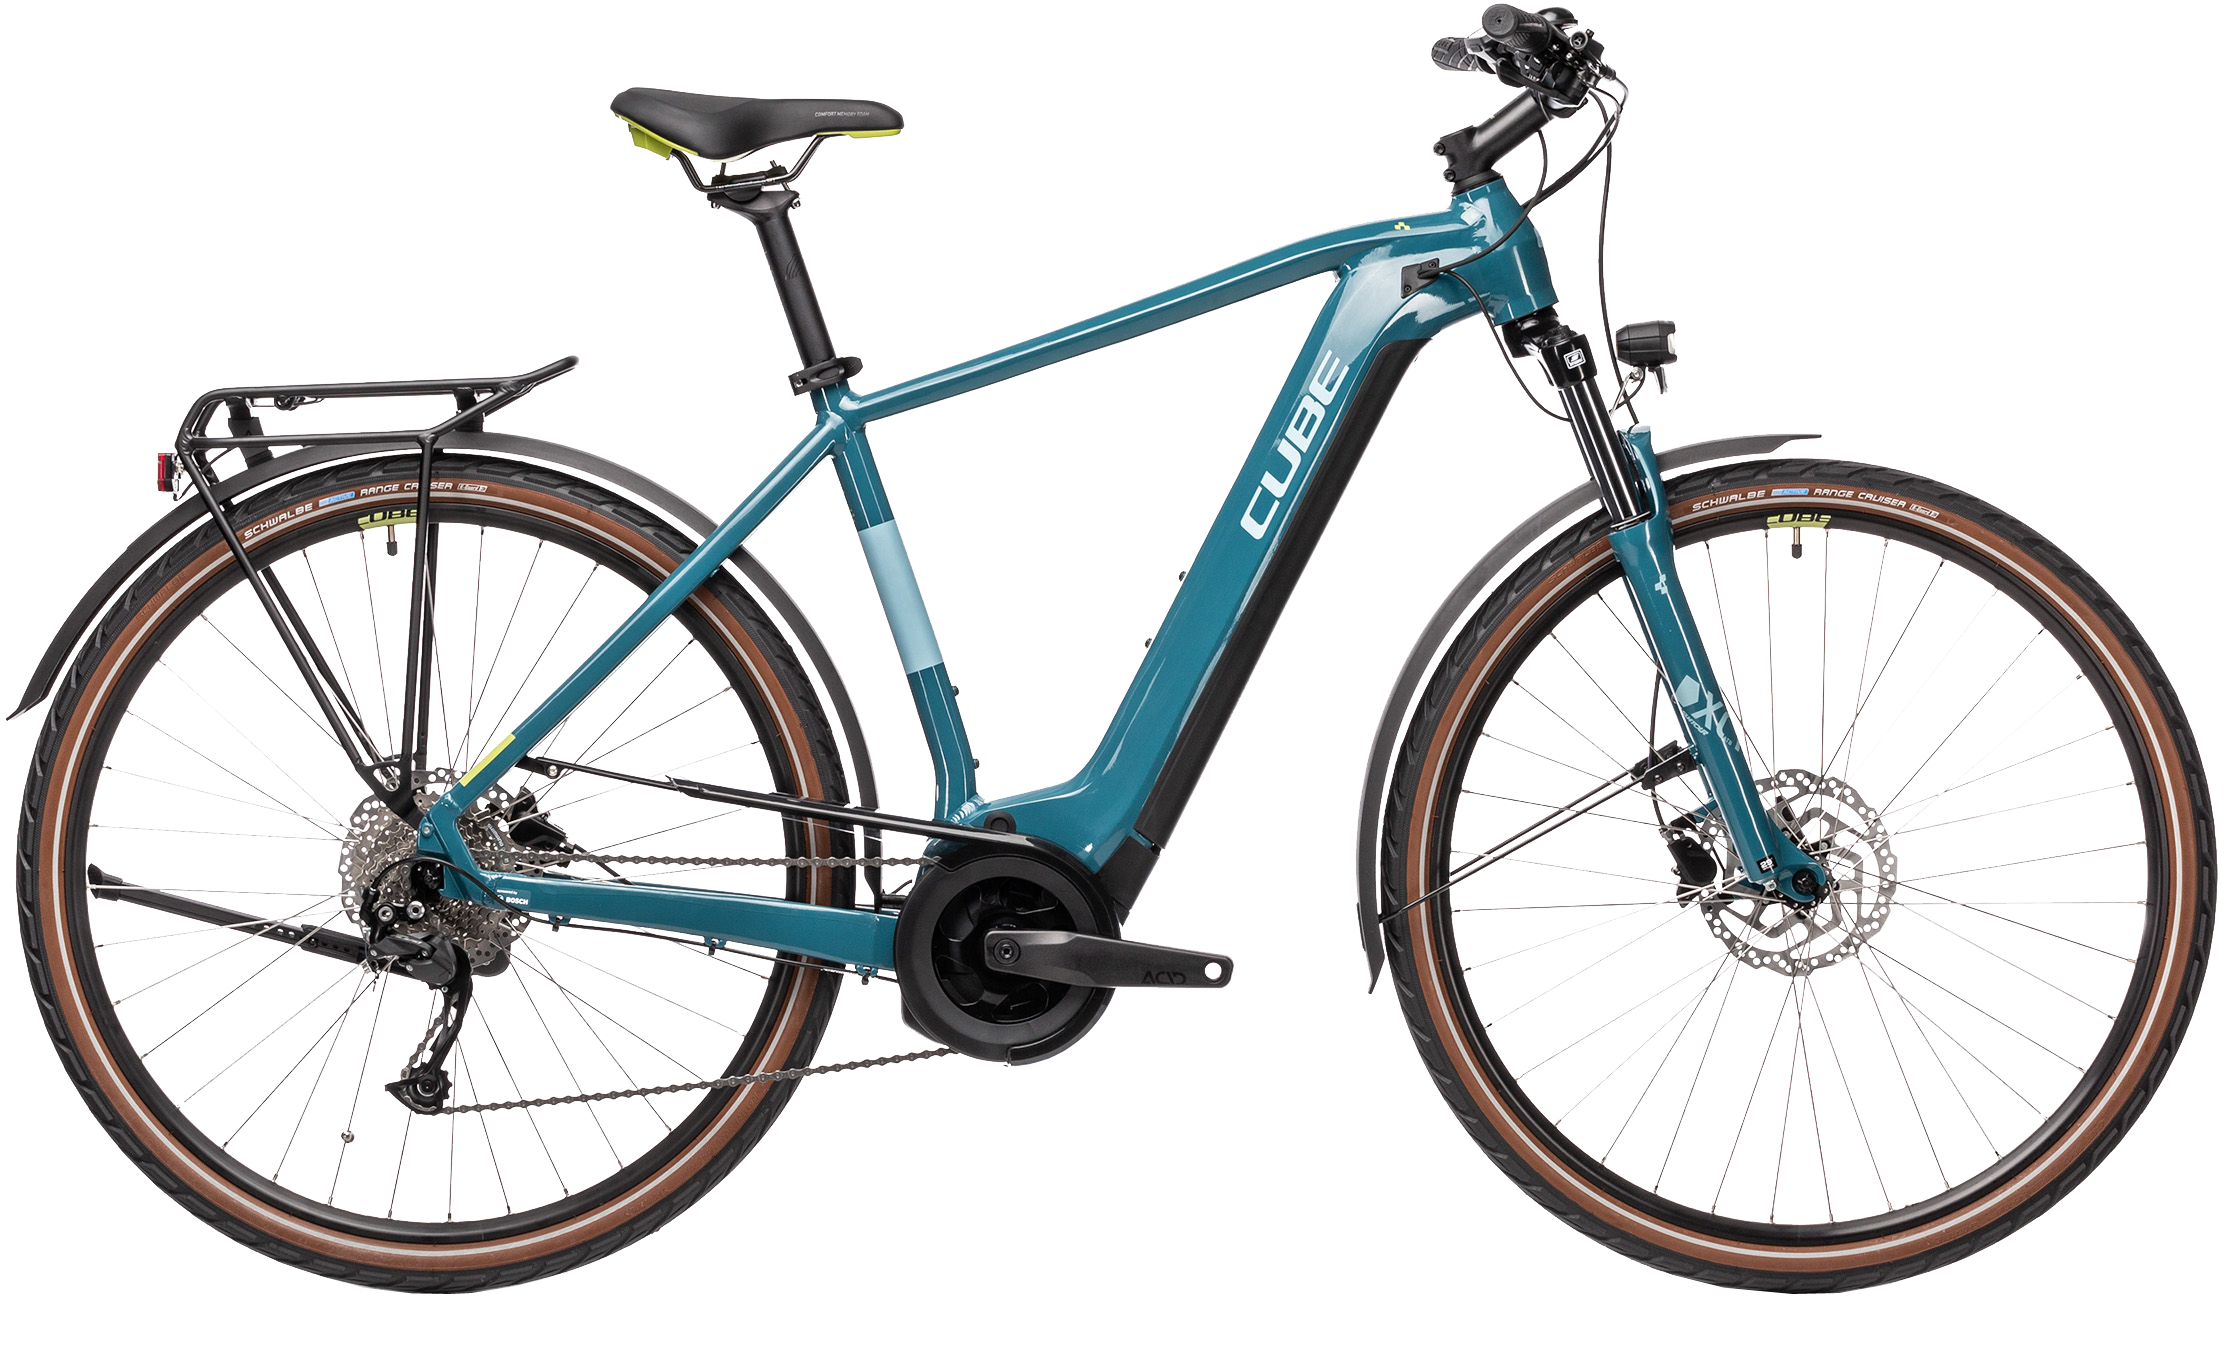 https://w8w5m3f8.stackpathcdn.com/20269/vtc-electrique-cube-touring-hybrid-one-400-500-625wh-cadre-homme.jpg